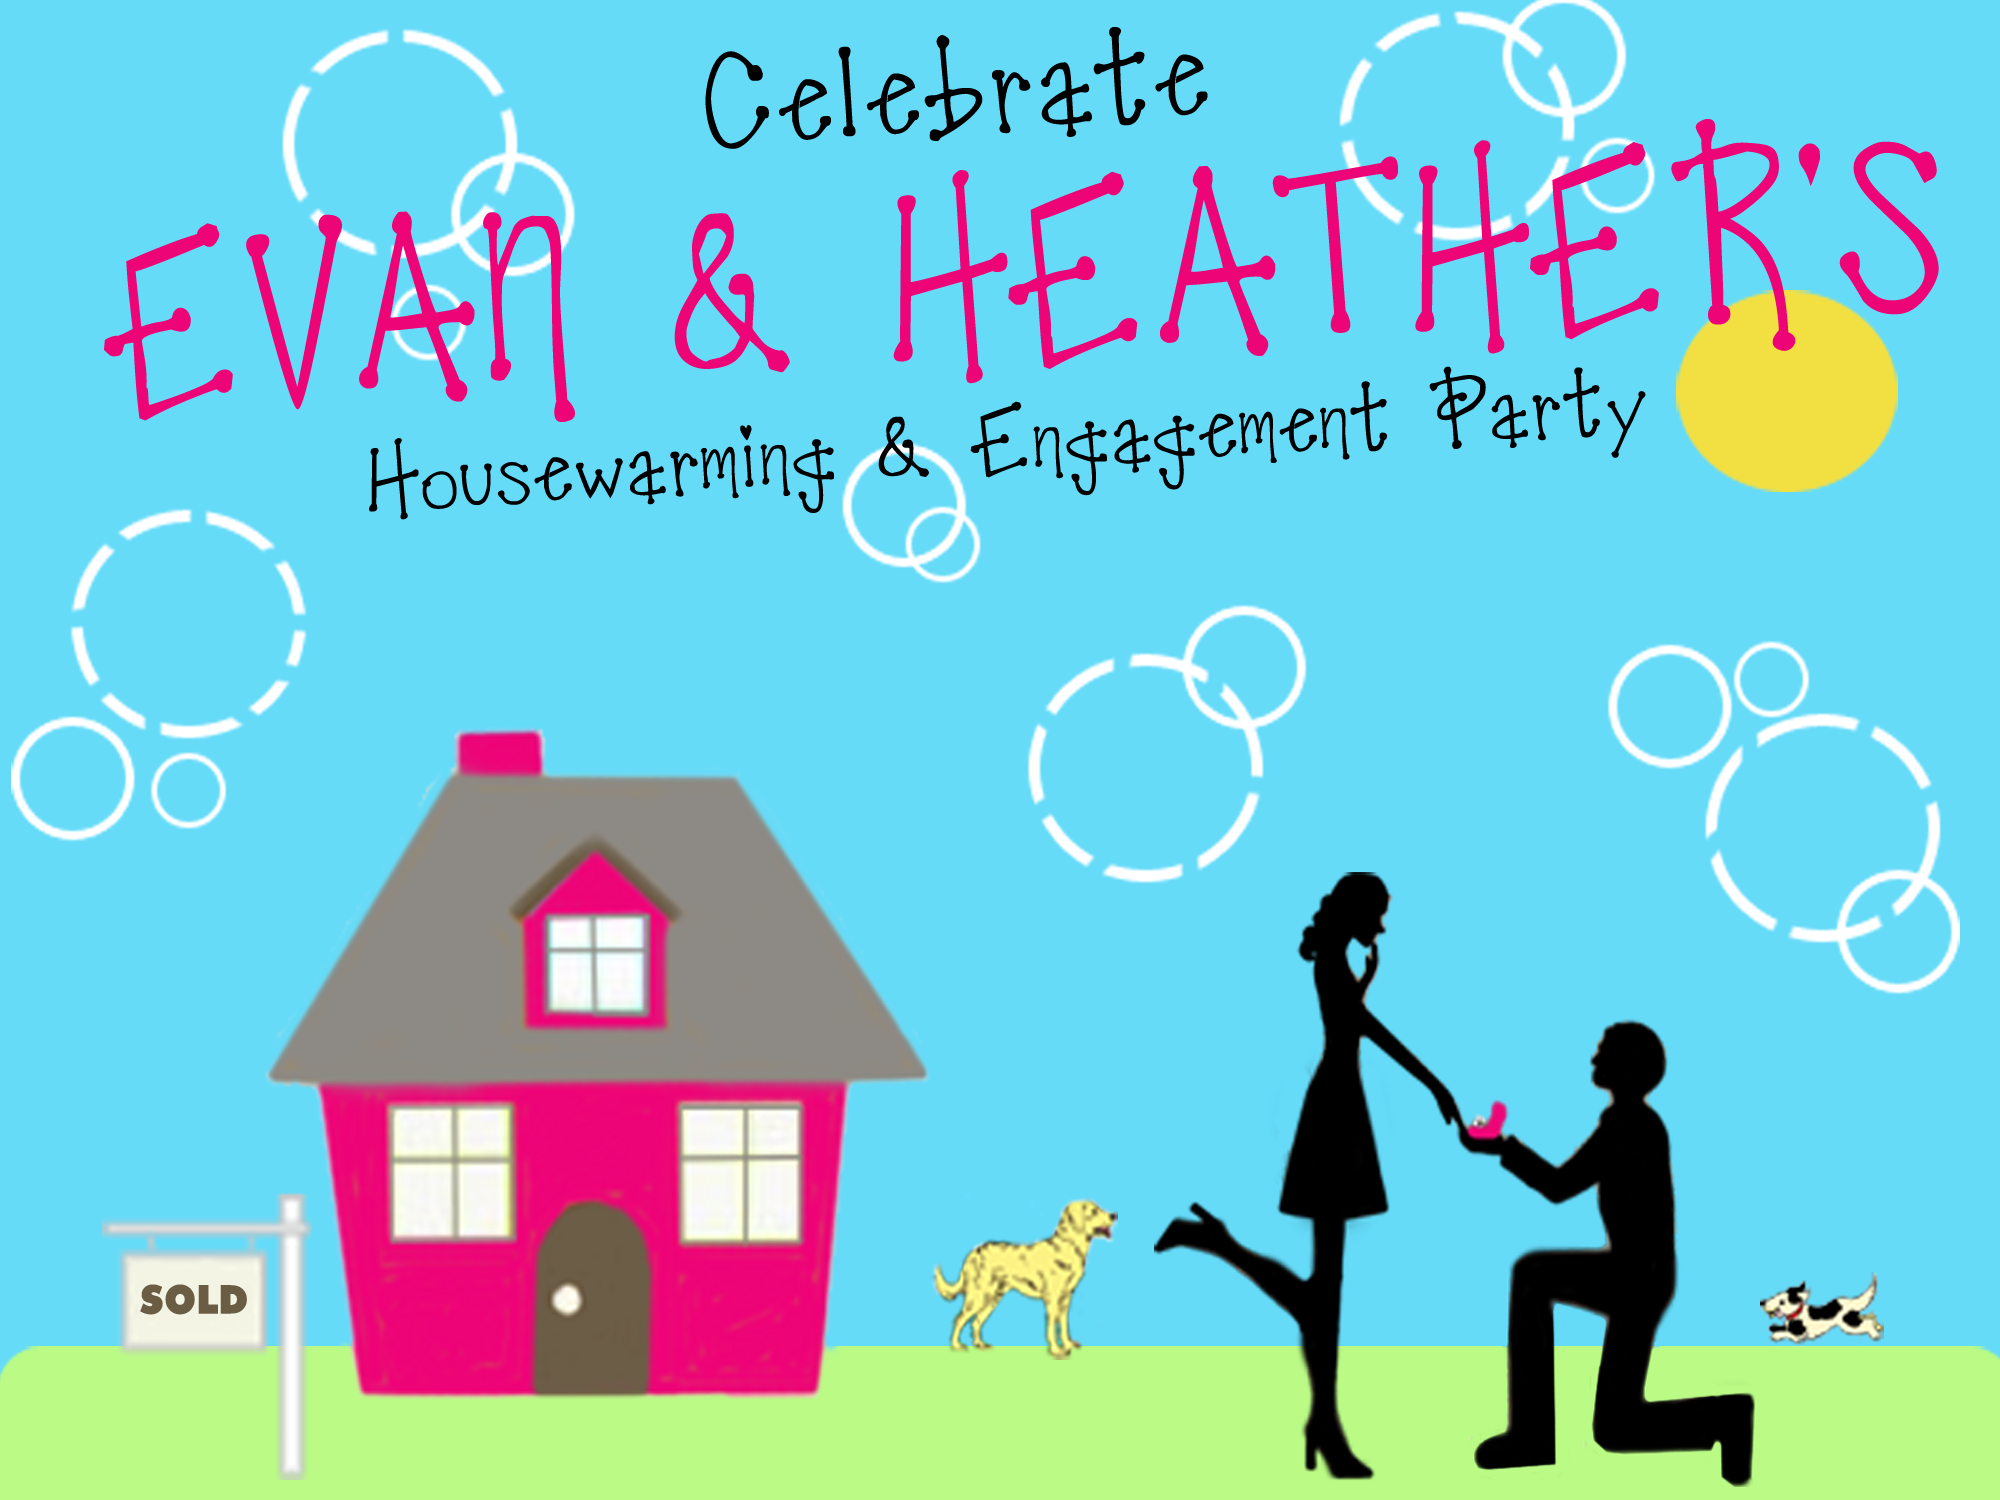 Housewarming Party Invitations Letter Custom Housewarming Party Invitations - House Warming Party, Transparent background PNG HD thumbnail